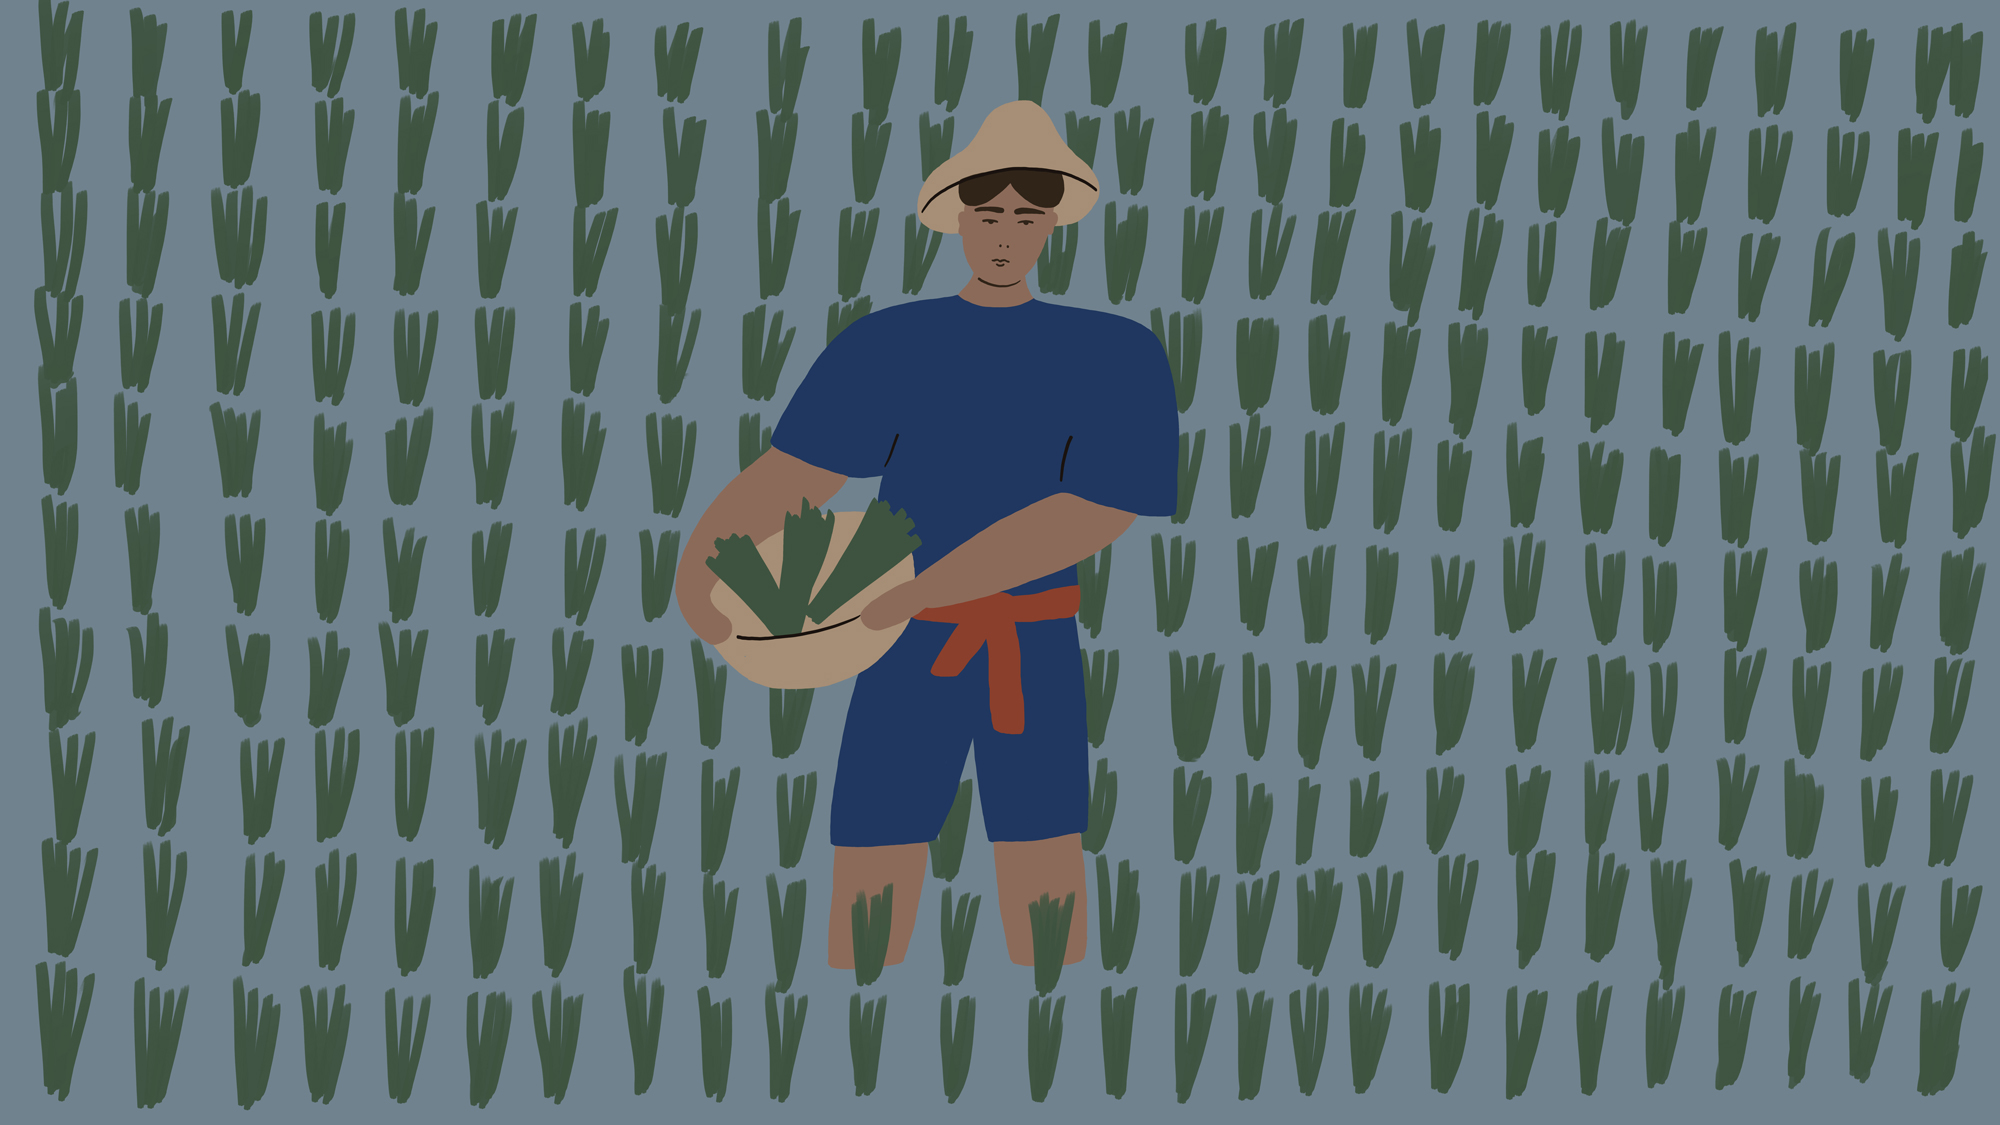 16caeb921 210_melioidosis_rice_farmer_karl-joel_larsson1-copy.jpg?quality=80&strip=all